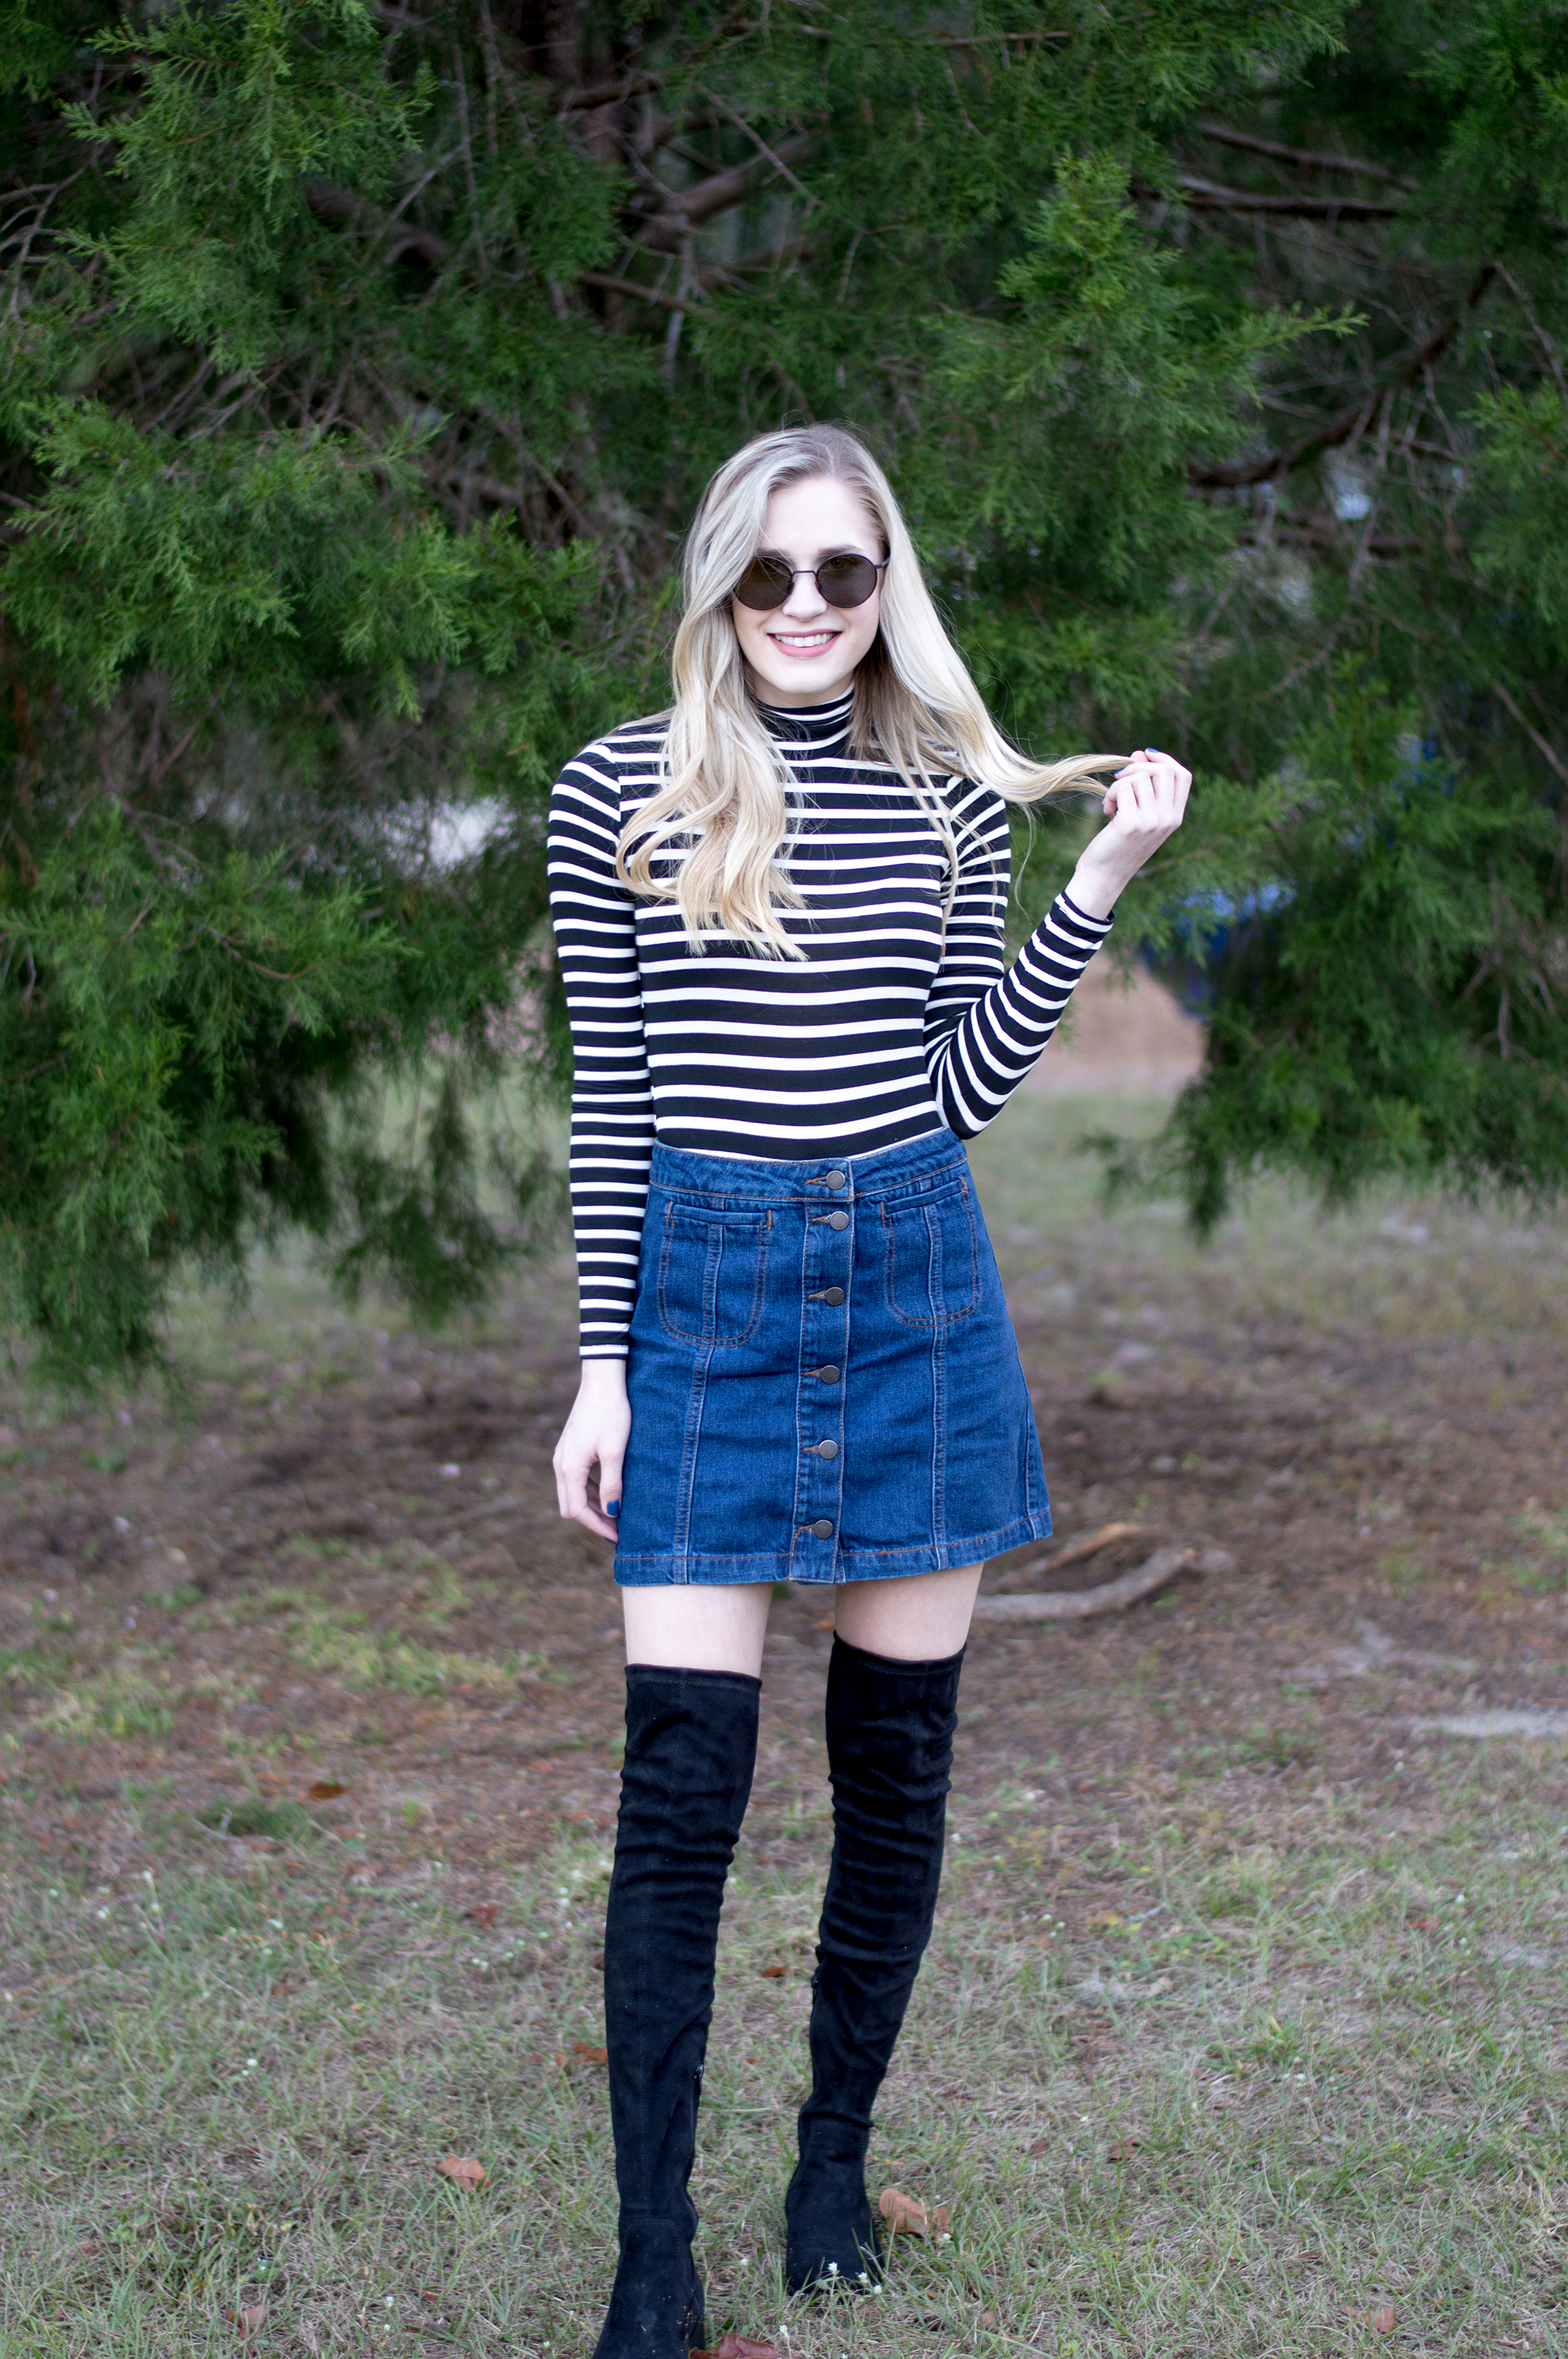 styelled_blog_fashion_lifestyle_beauty_style_blogger_topshop_forever_21_denim_skirt_striped_turtleneck_diff_eyewear_winter_style_fall_sweater_weather_over_the_knee_boots_09